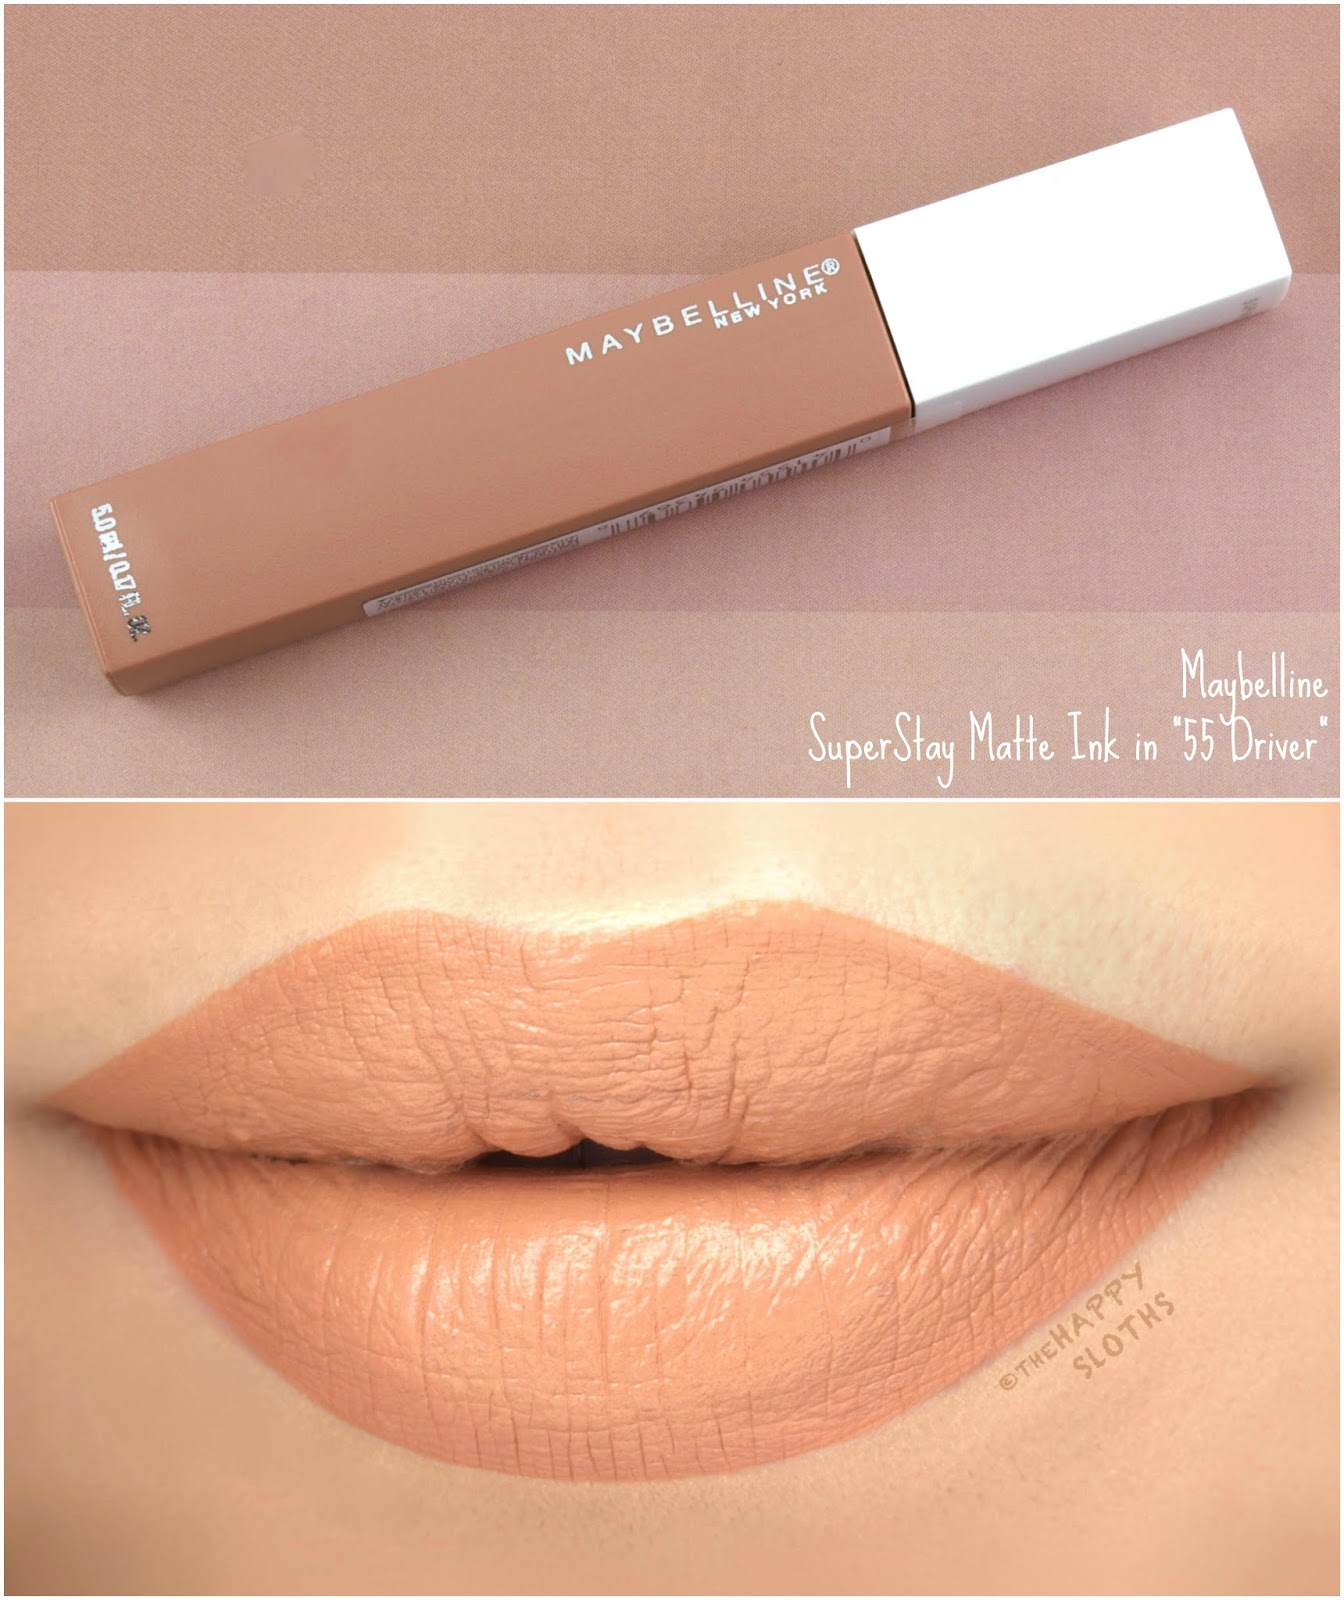 "Maybelline | SuperStay Matte Ink ""55 Driver"": Review and Swatches"